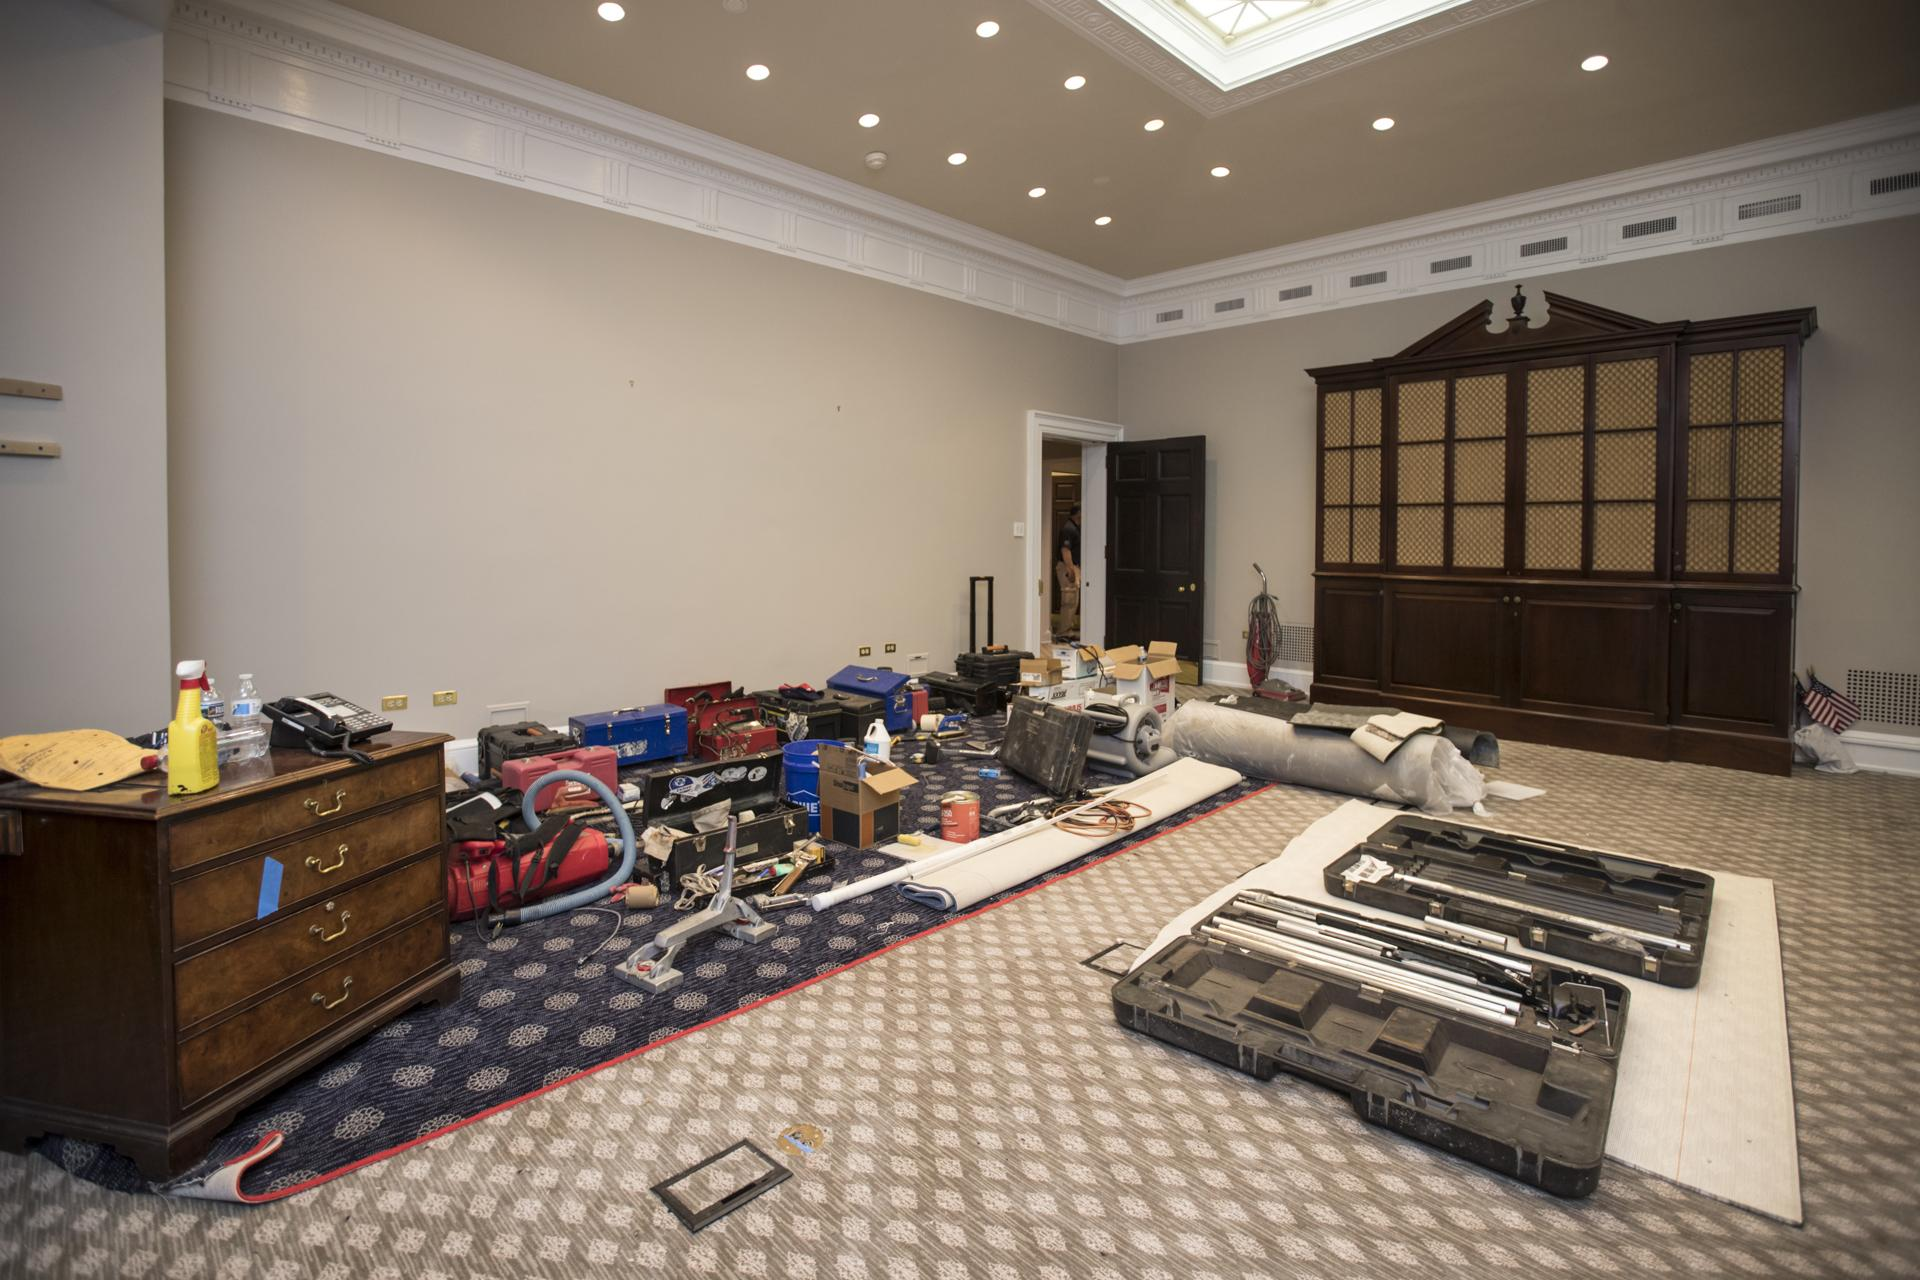 photos: see how renovations at the white house are progressing